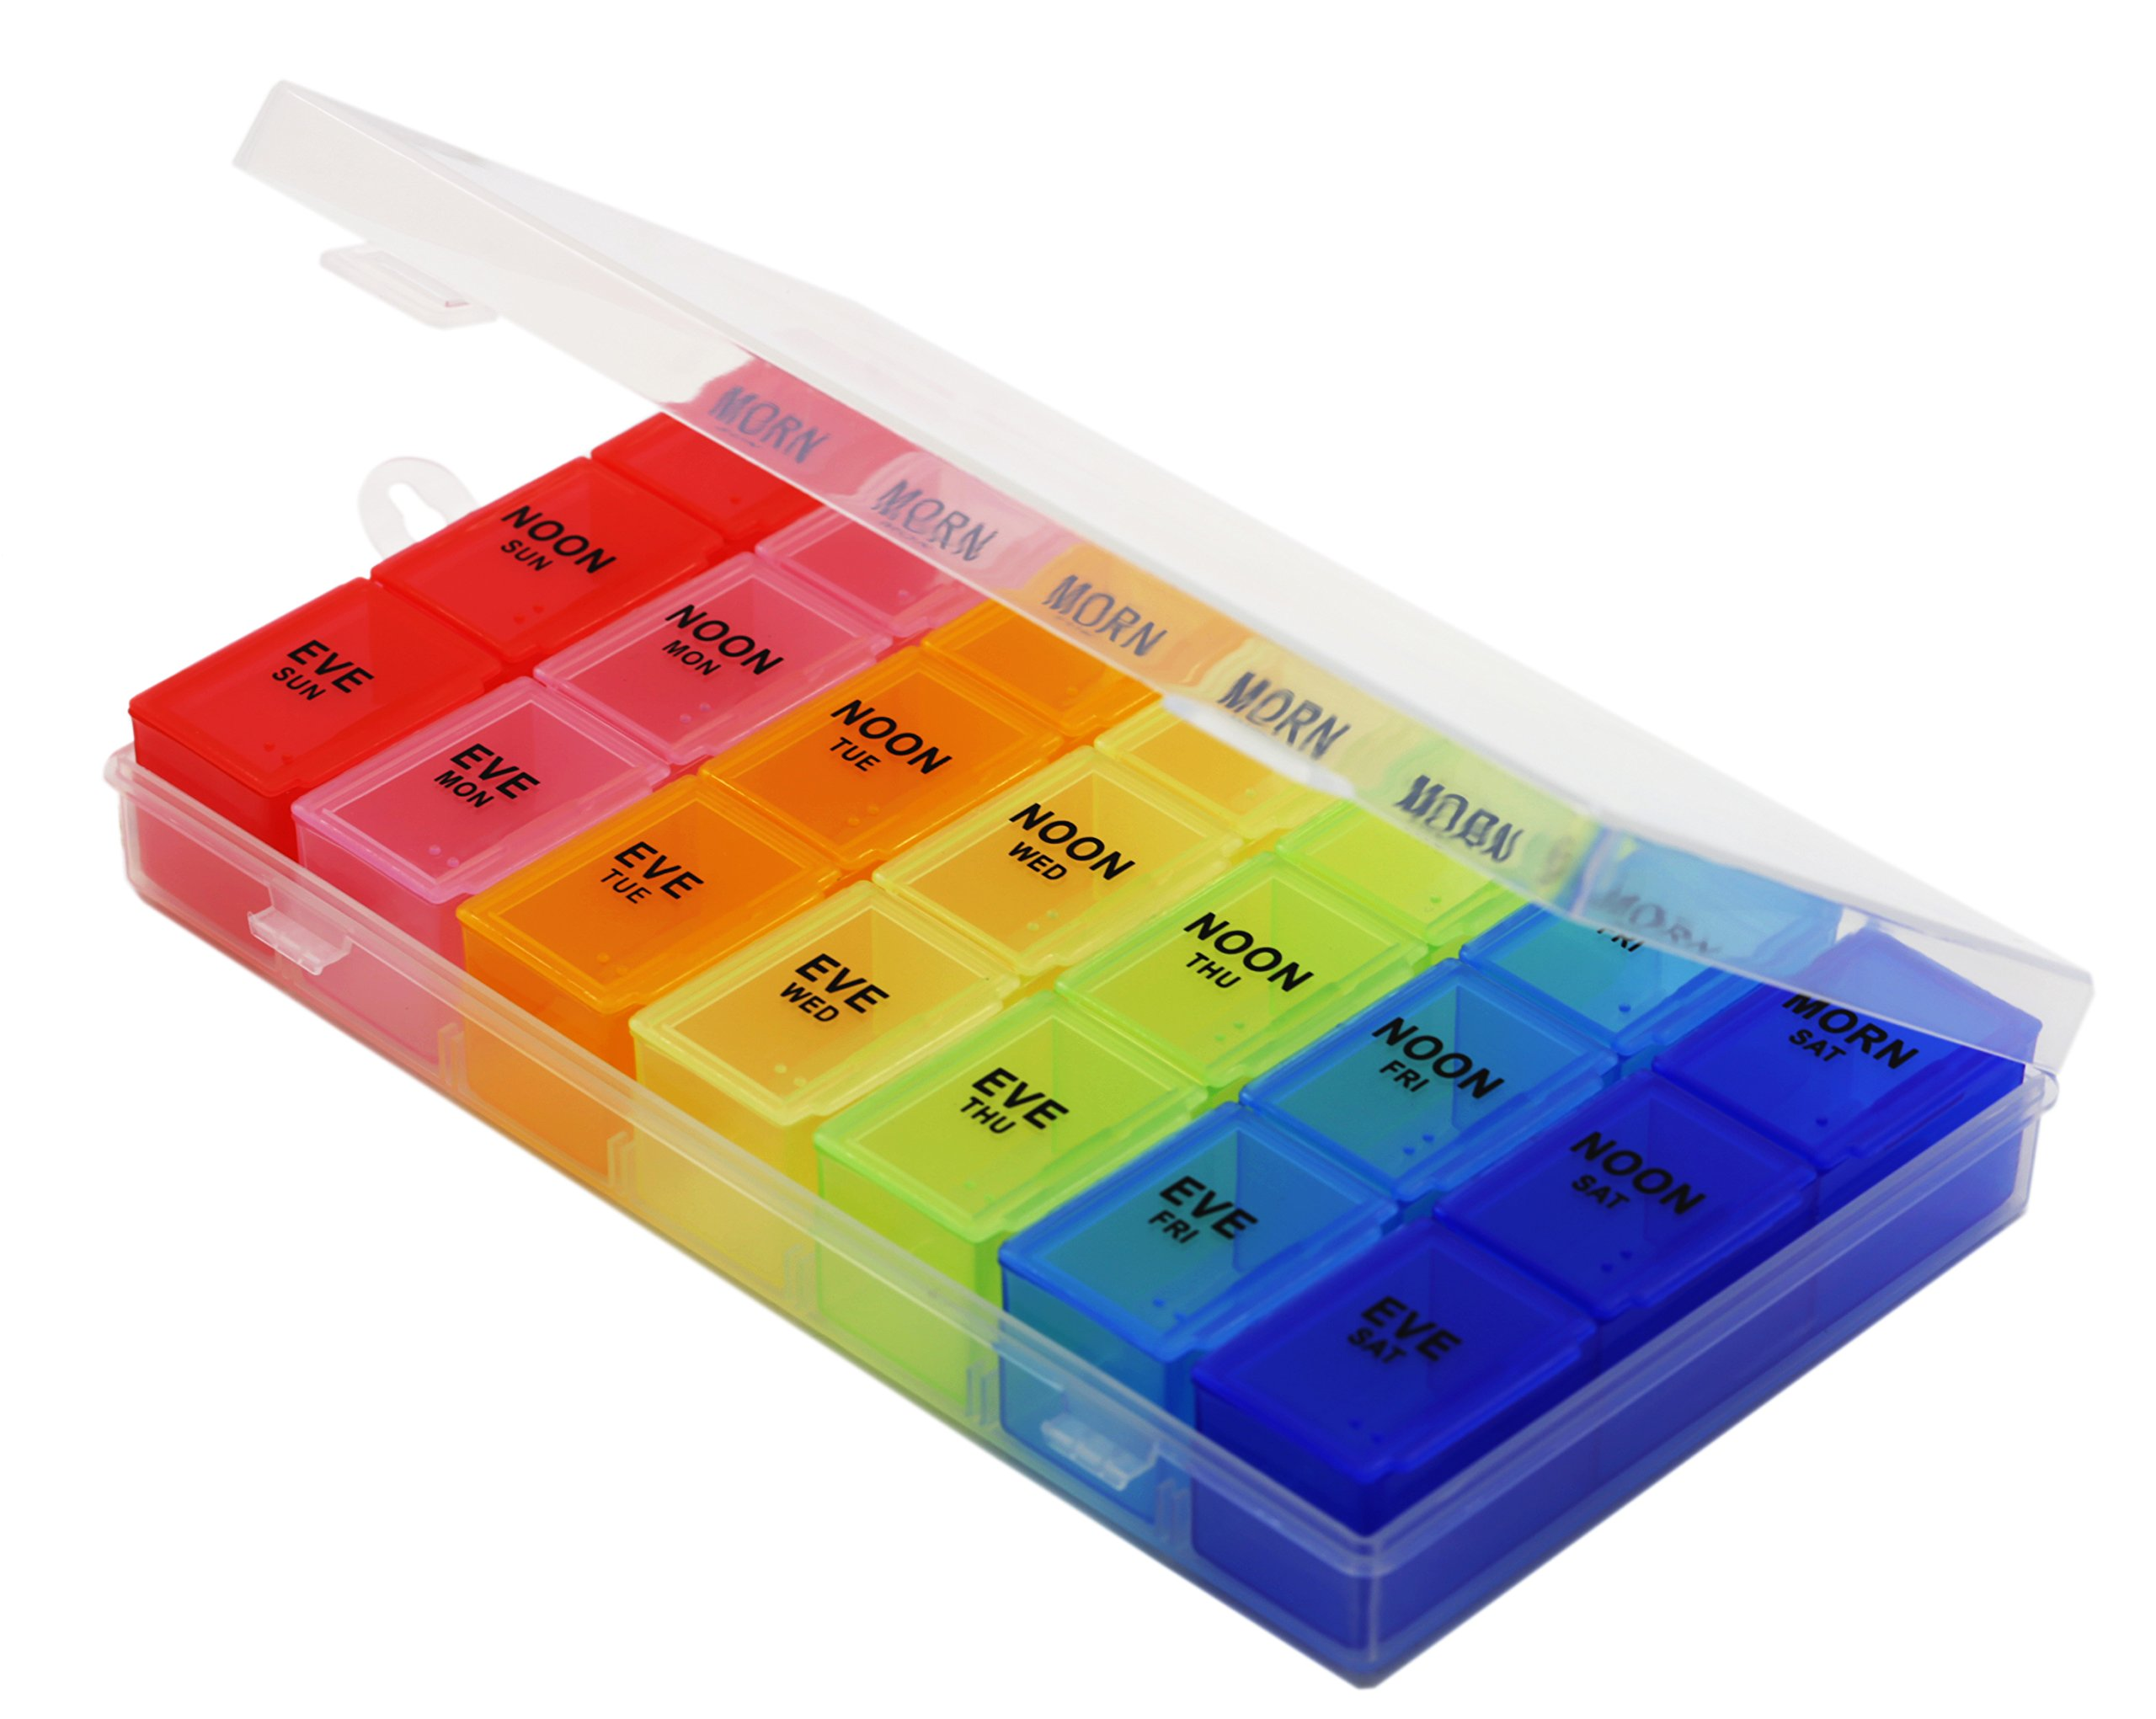 Star Tech Medical Aids Reminder Medication Pill Organizing Box (Colorful)